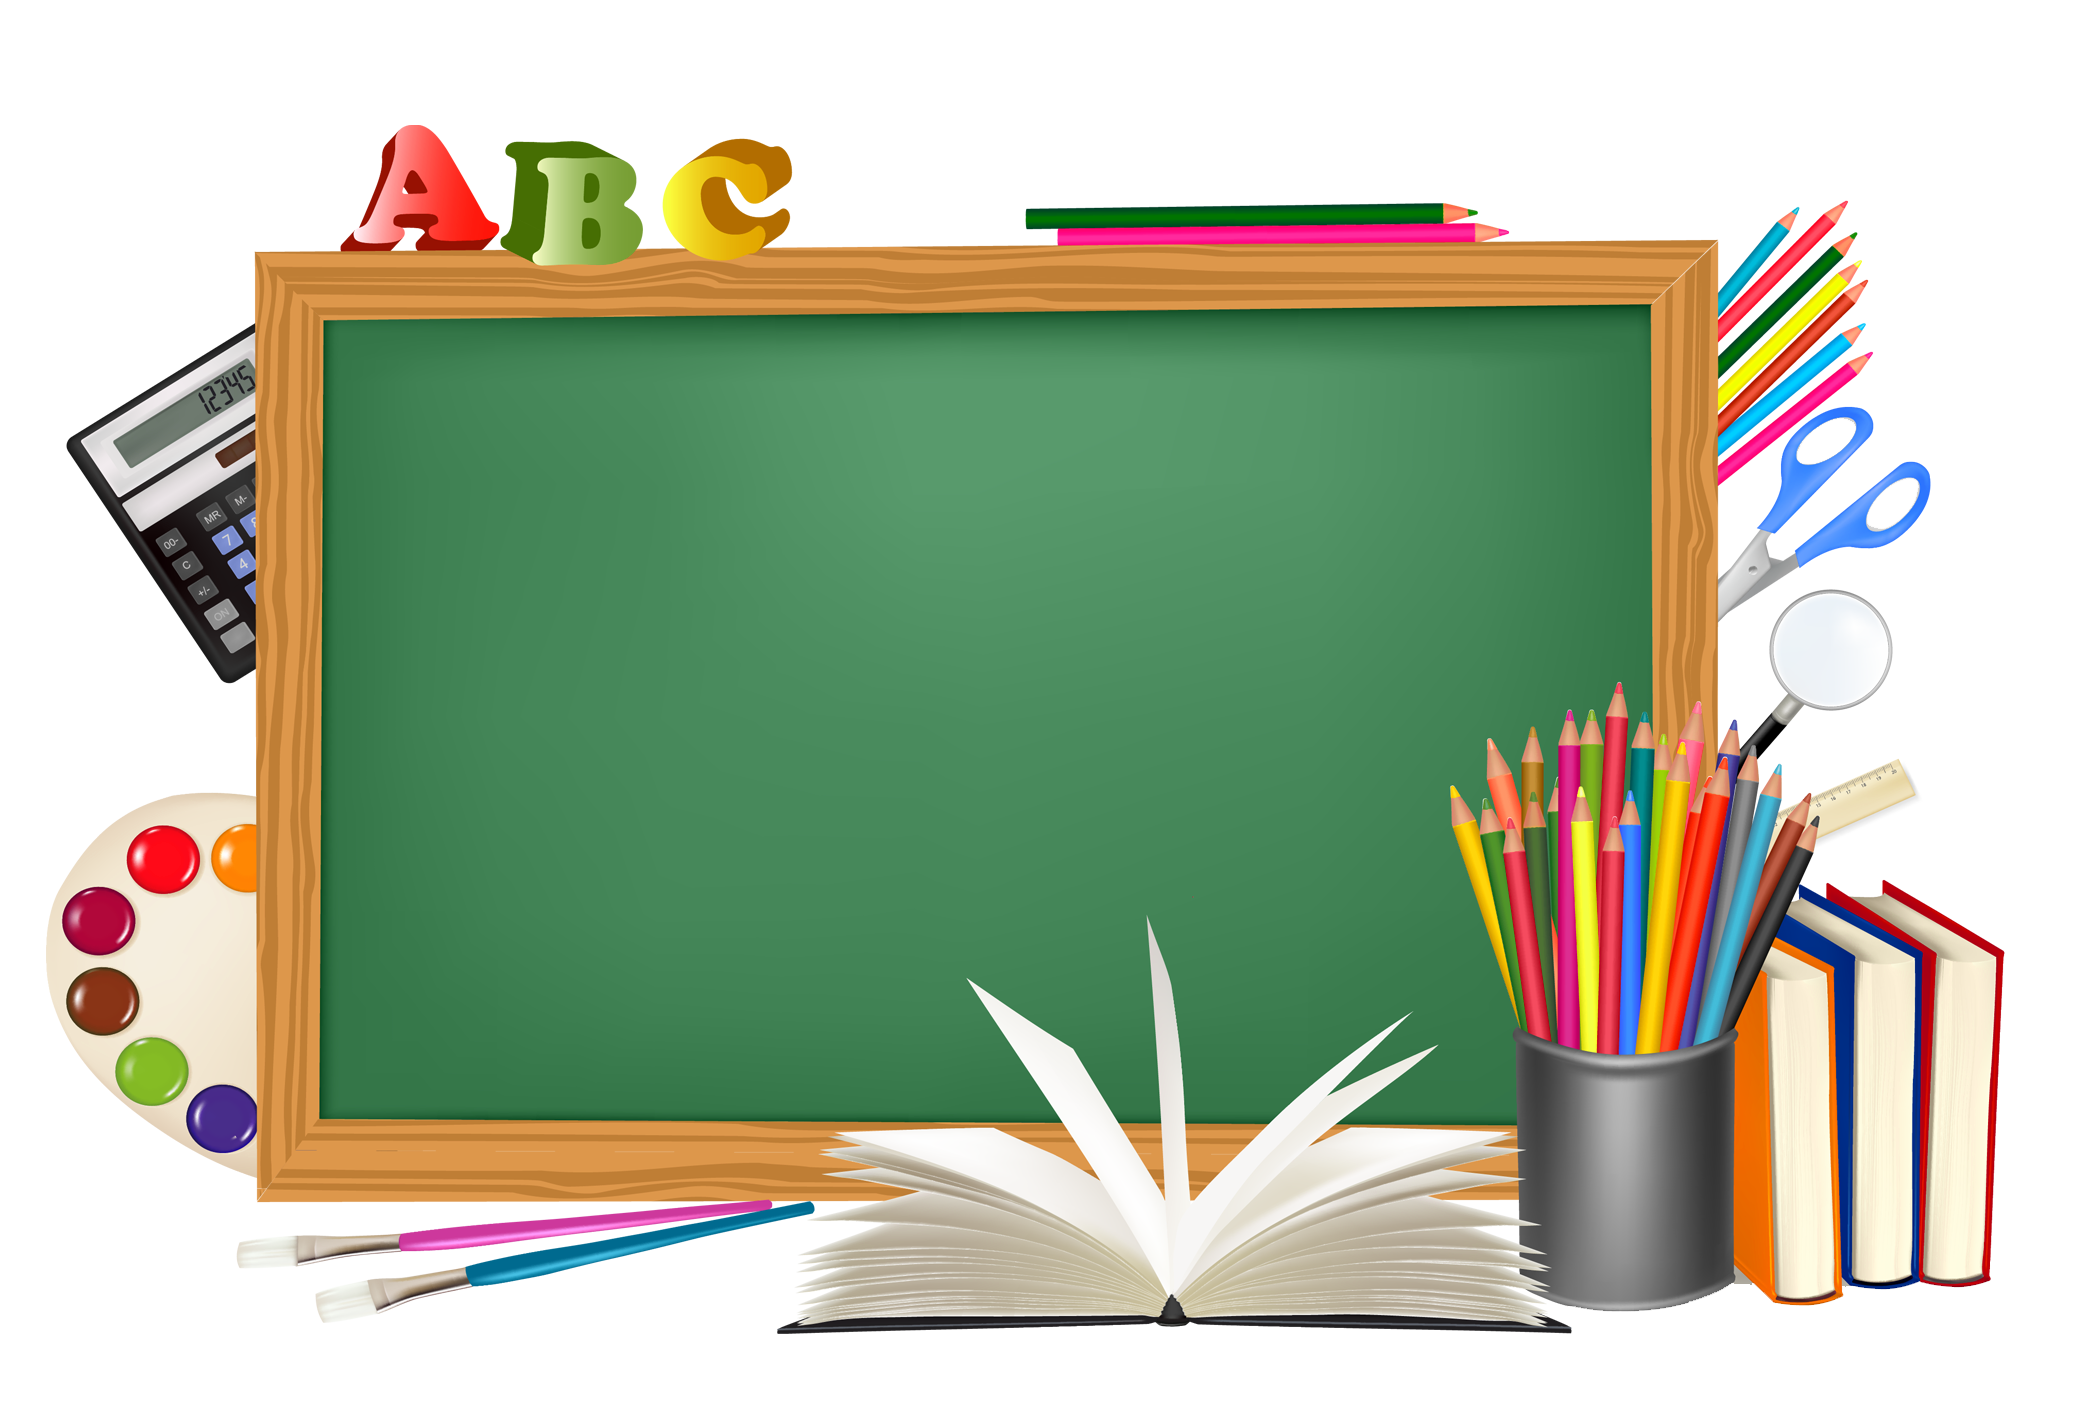 School blackboard clipart vector black and white download Green School Board and Decors PNG Picture | ✪ Clipart ... vector black and white download